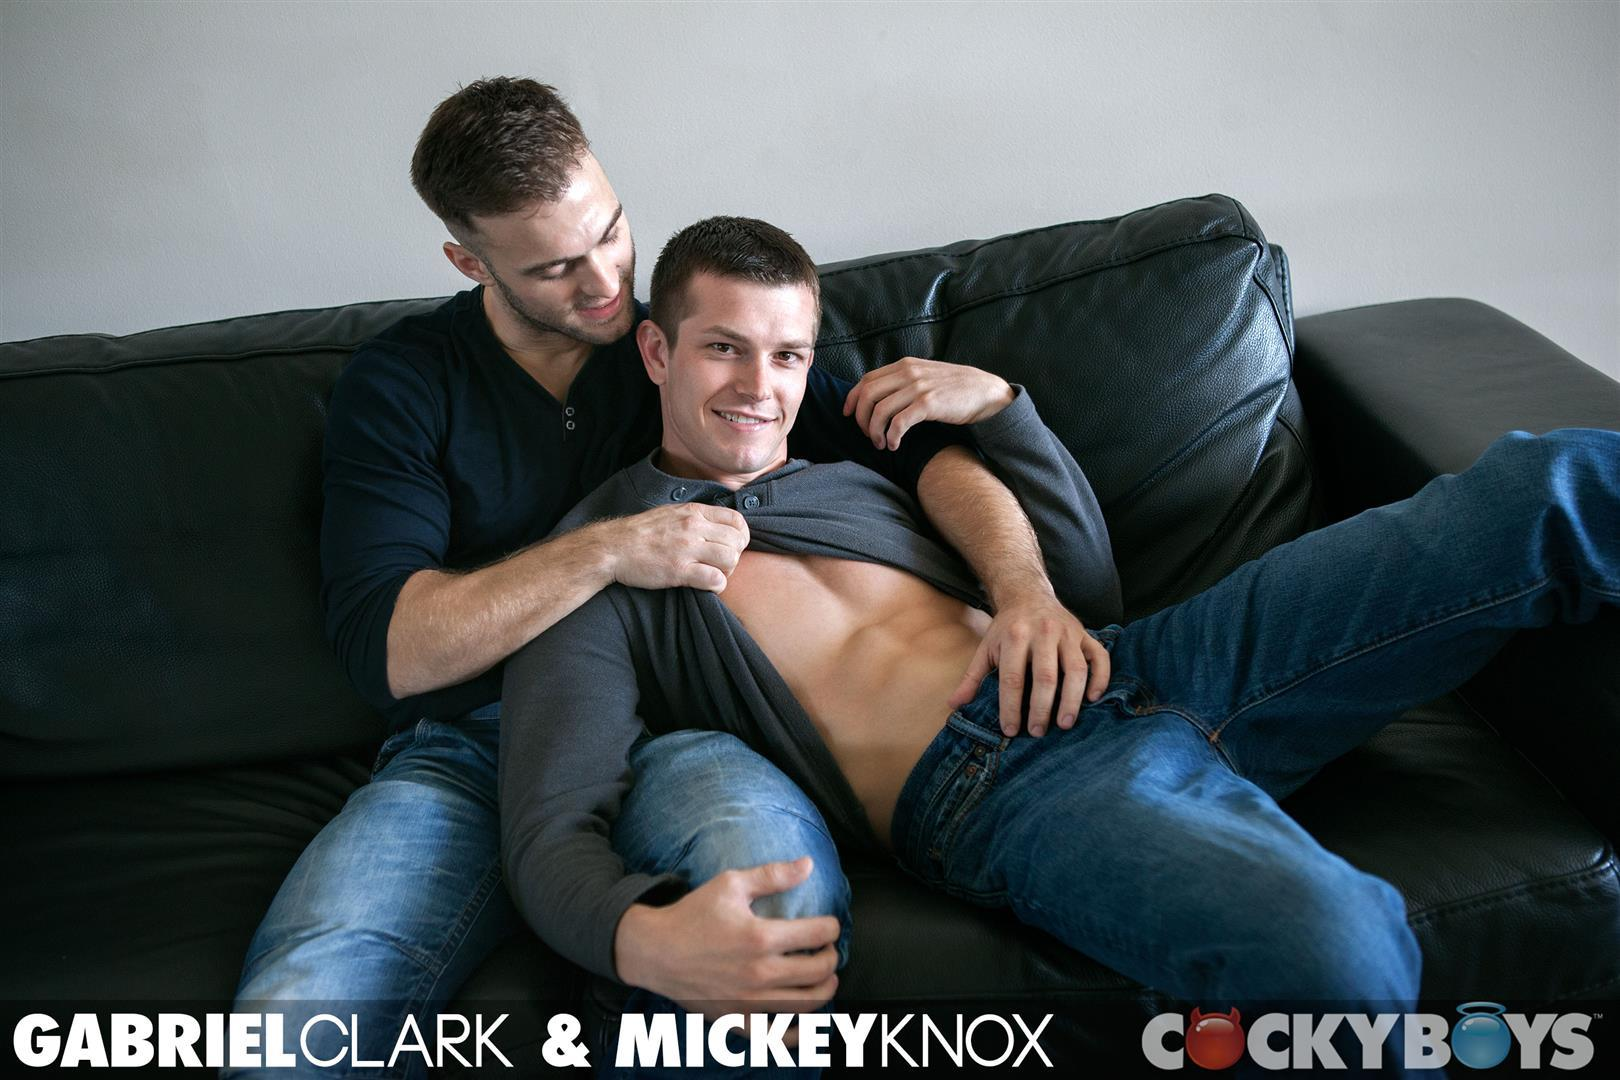 Cockyboys-Mickey-Knox-and-Gabriel-Clark-American-Boys-Thick-Cocks-Fucking-Amateur-Gay-Porn-01.jpg